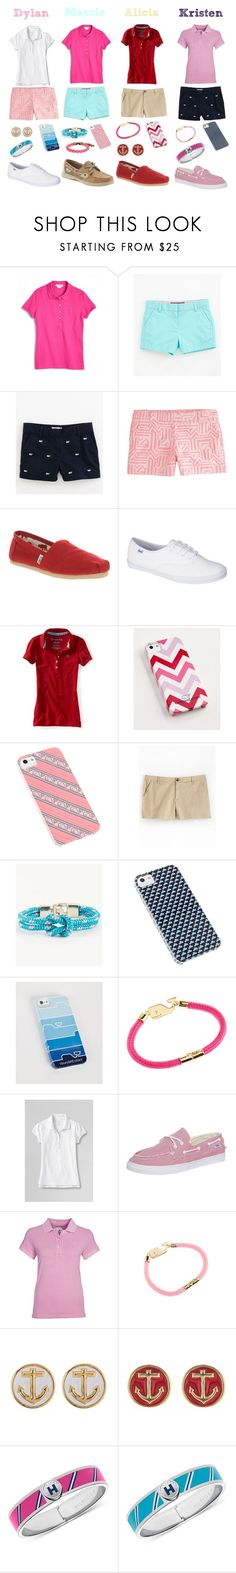 """The Clique- Casual Preppy"" by daniellenicole ❤ liked on Polyvore featuring Lacoste, Vineyard Vines, J.Crew, TOMS, Keds, Aéropostale, Sperry, Lord & Taylor, Lands' End and Vans"